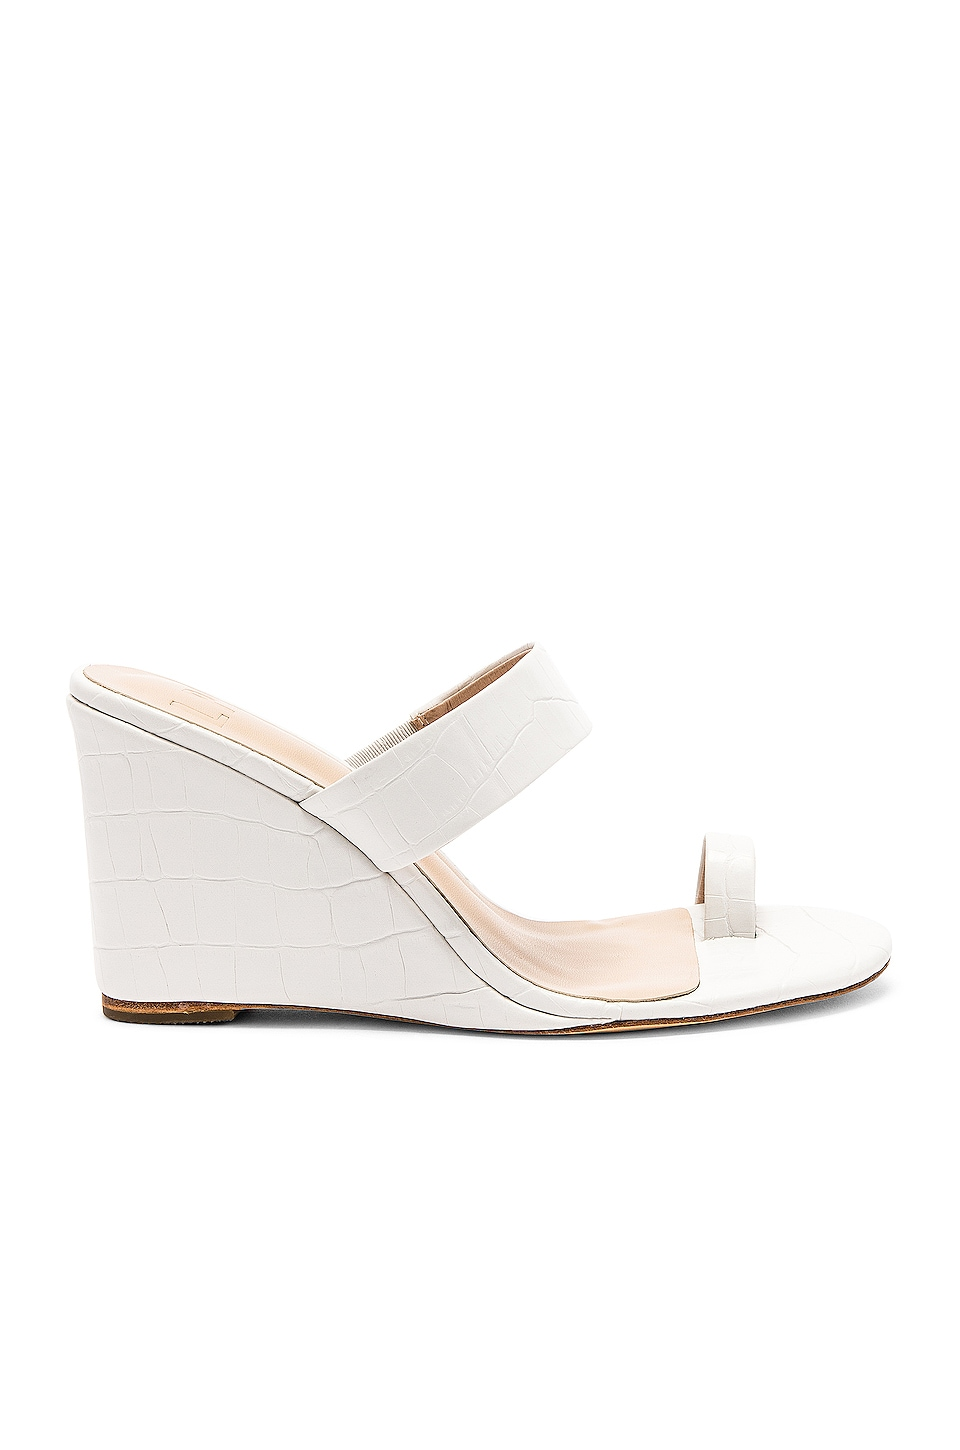 LPA Dona Wedge in White